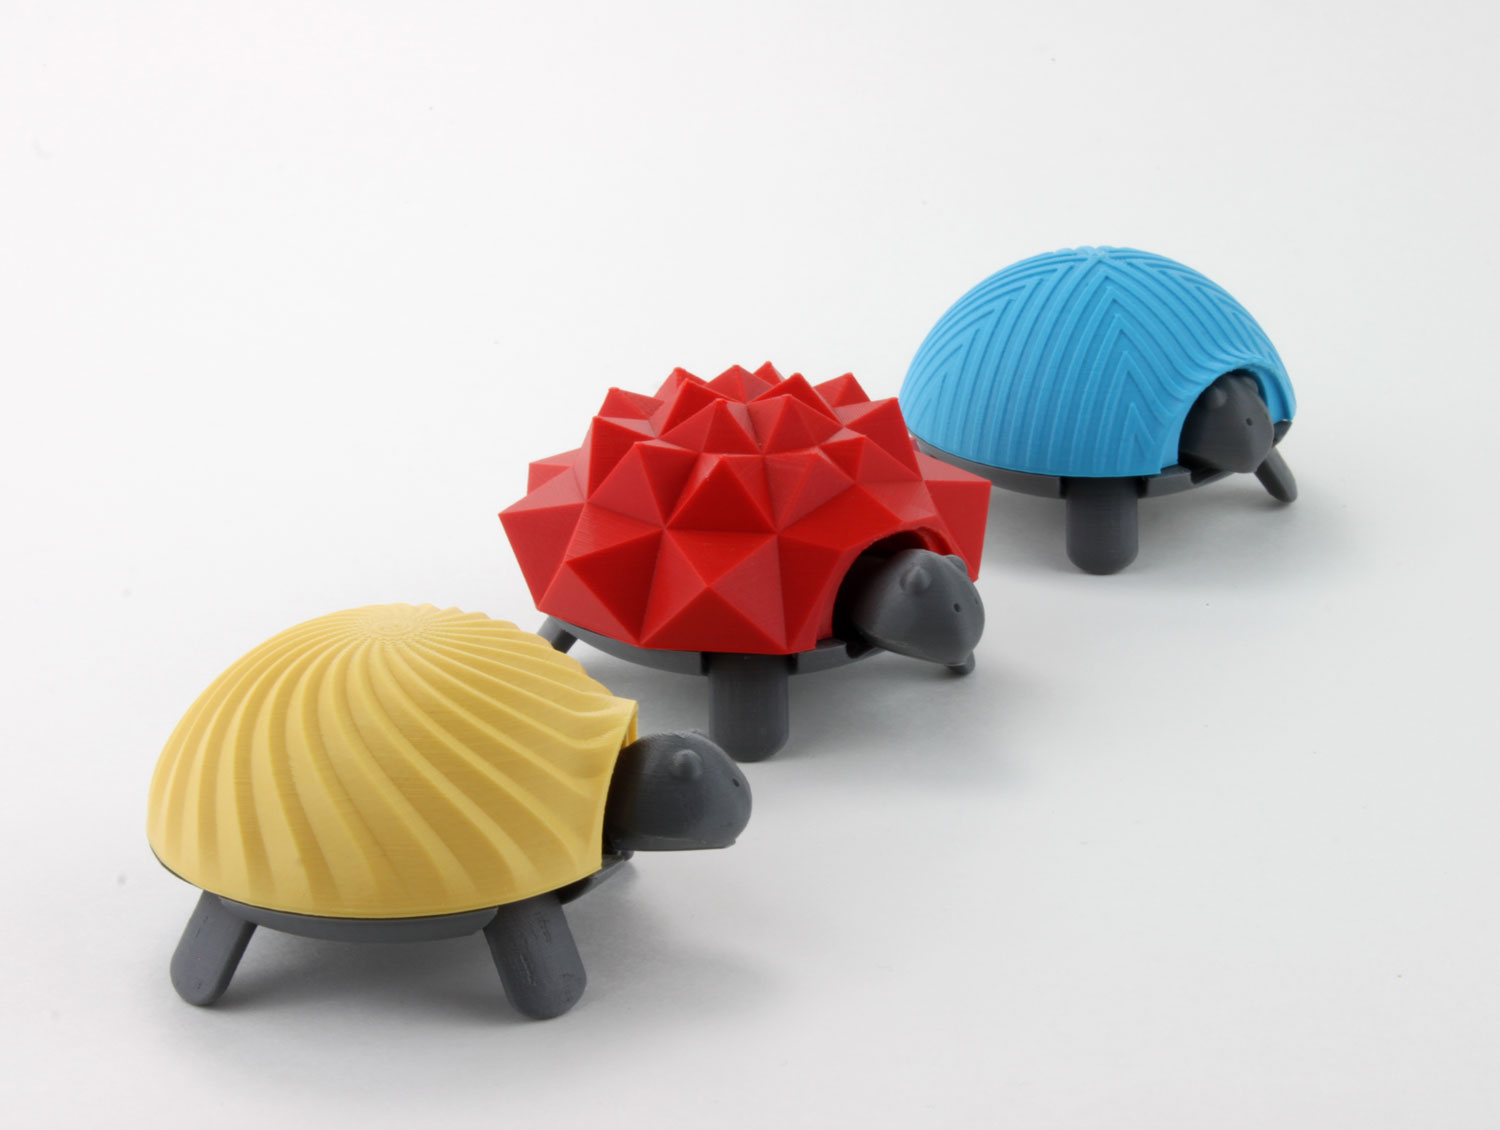 03 lineup patterns 3d printed squishy turtle nature animal toy kids project design colorful